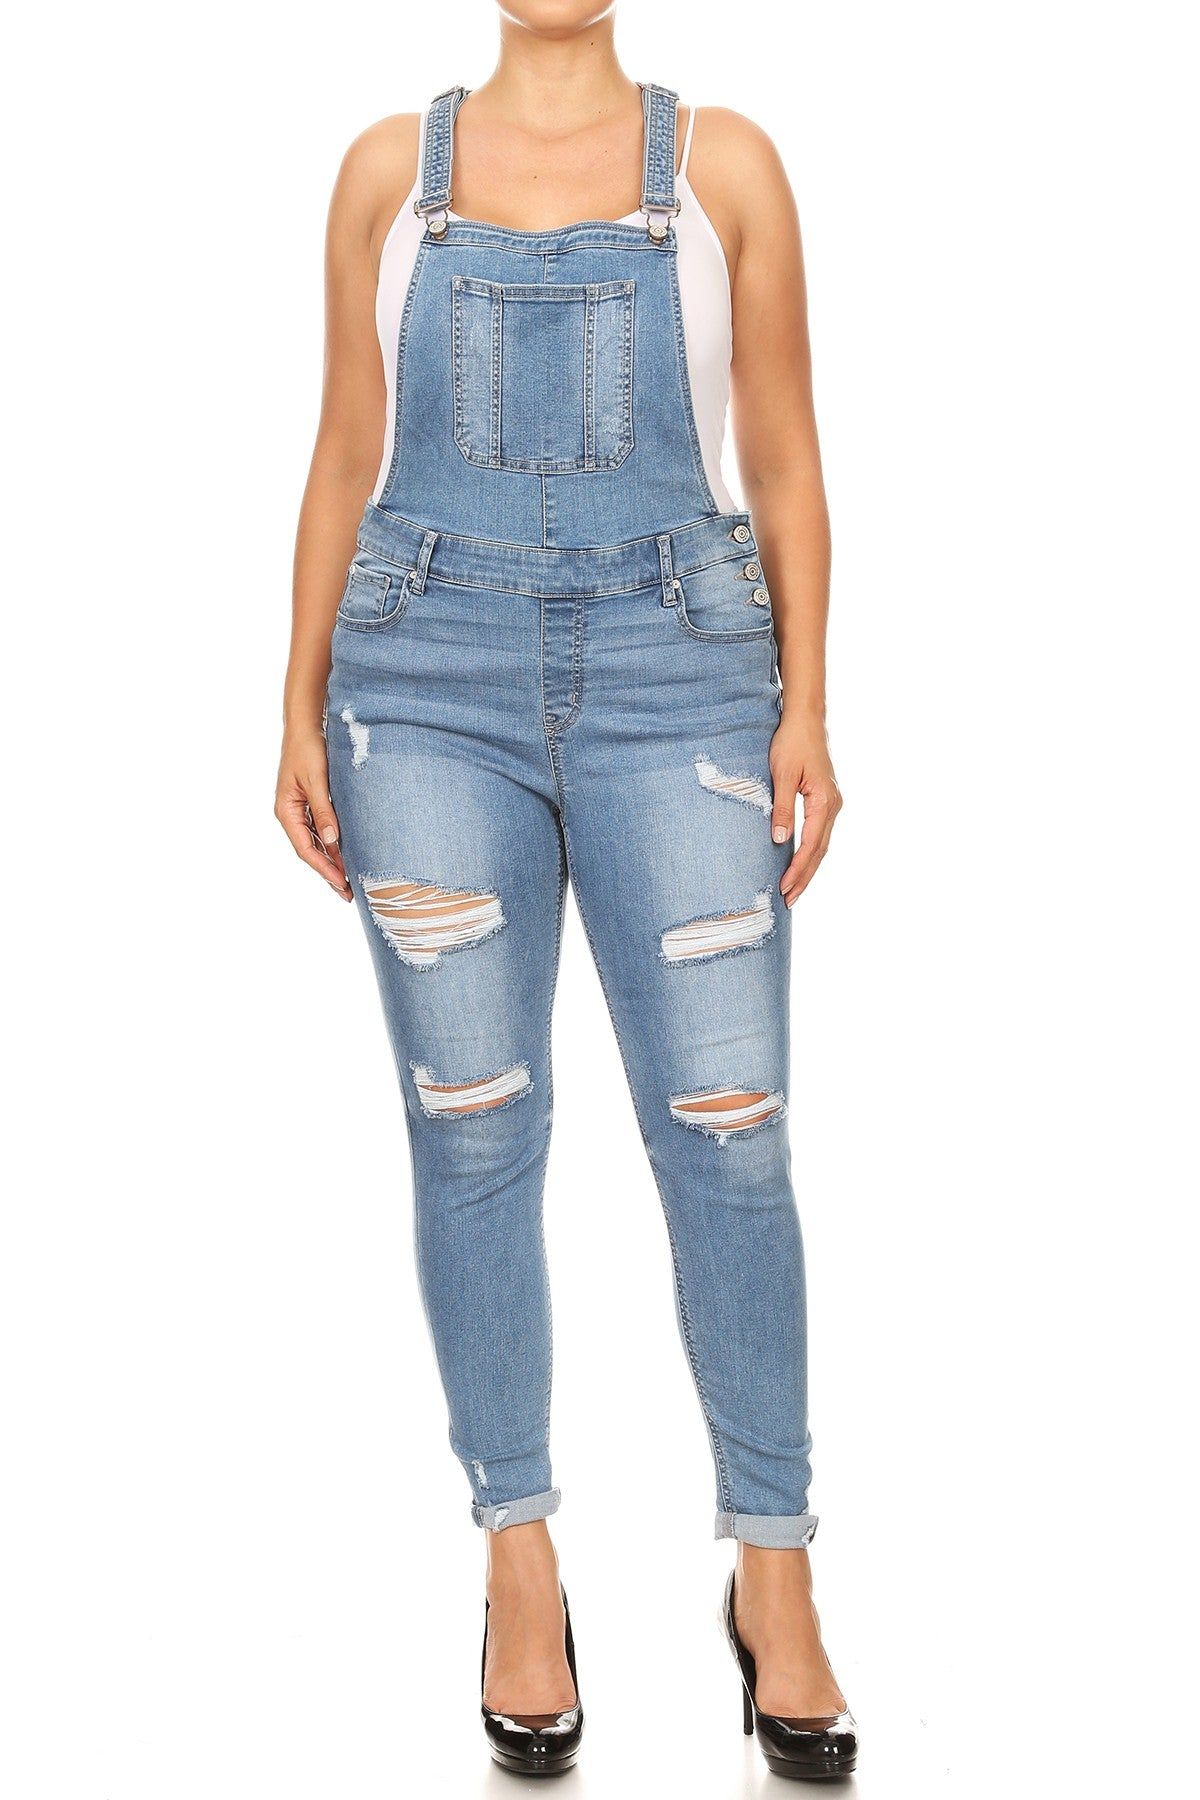 Medium Distressed Denim Overalls - PLUS - JEAN